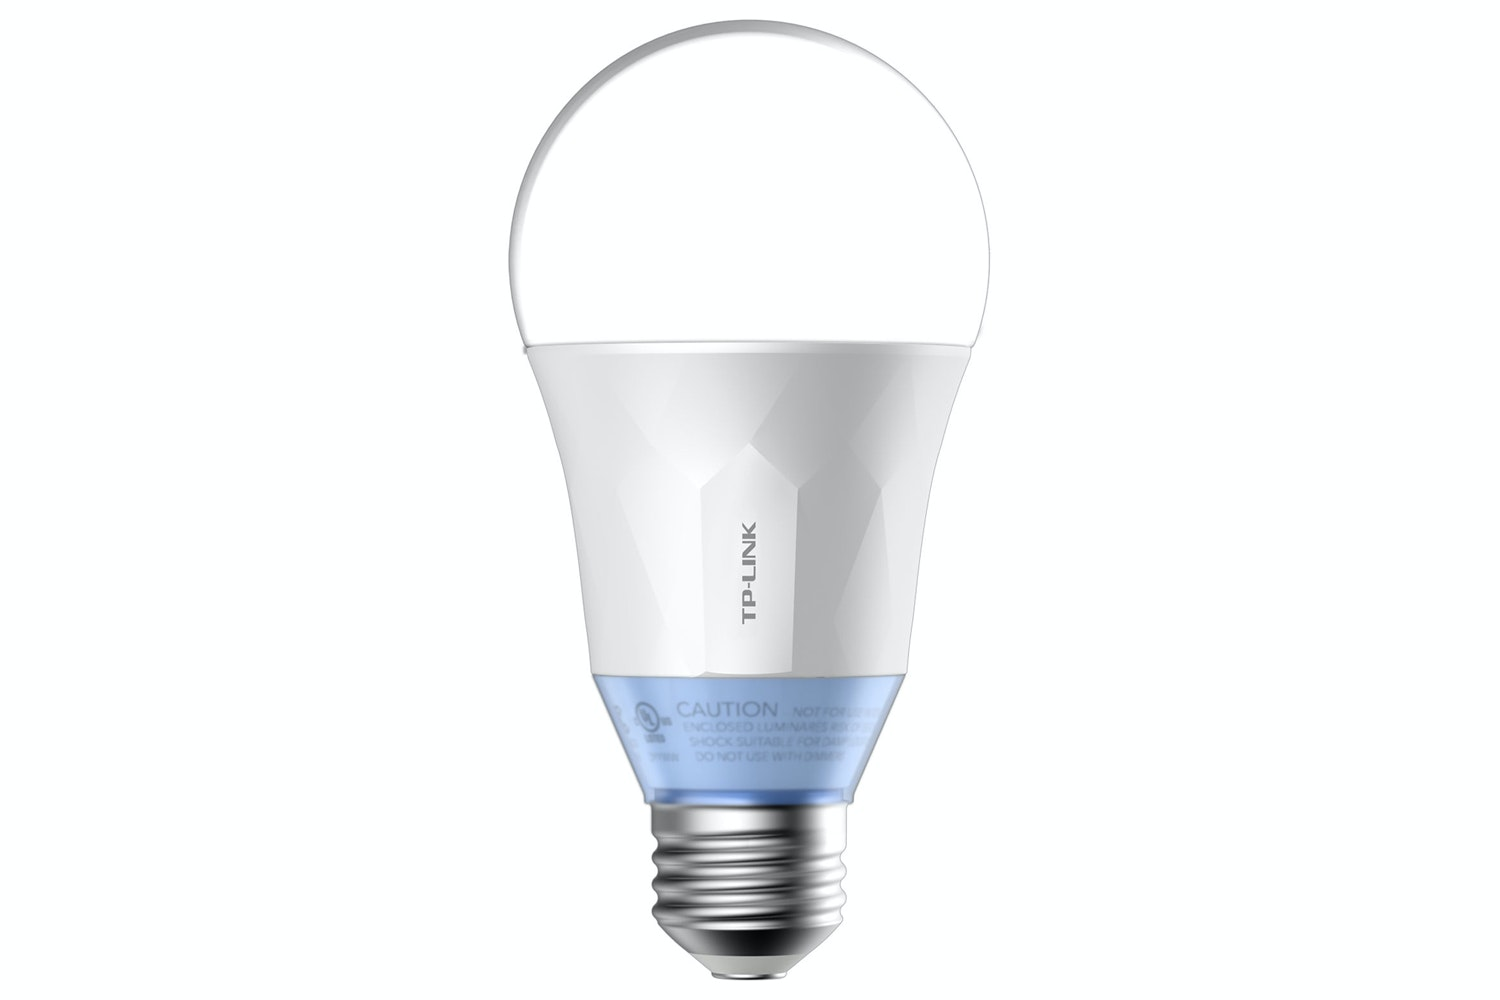 TP Link Smart Wi-Fi LED Bulb | Tunable White